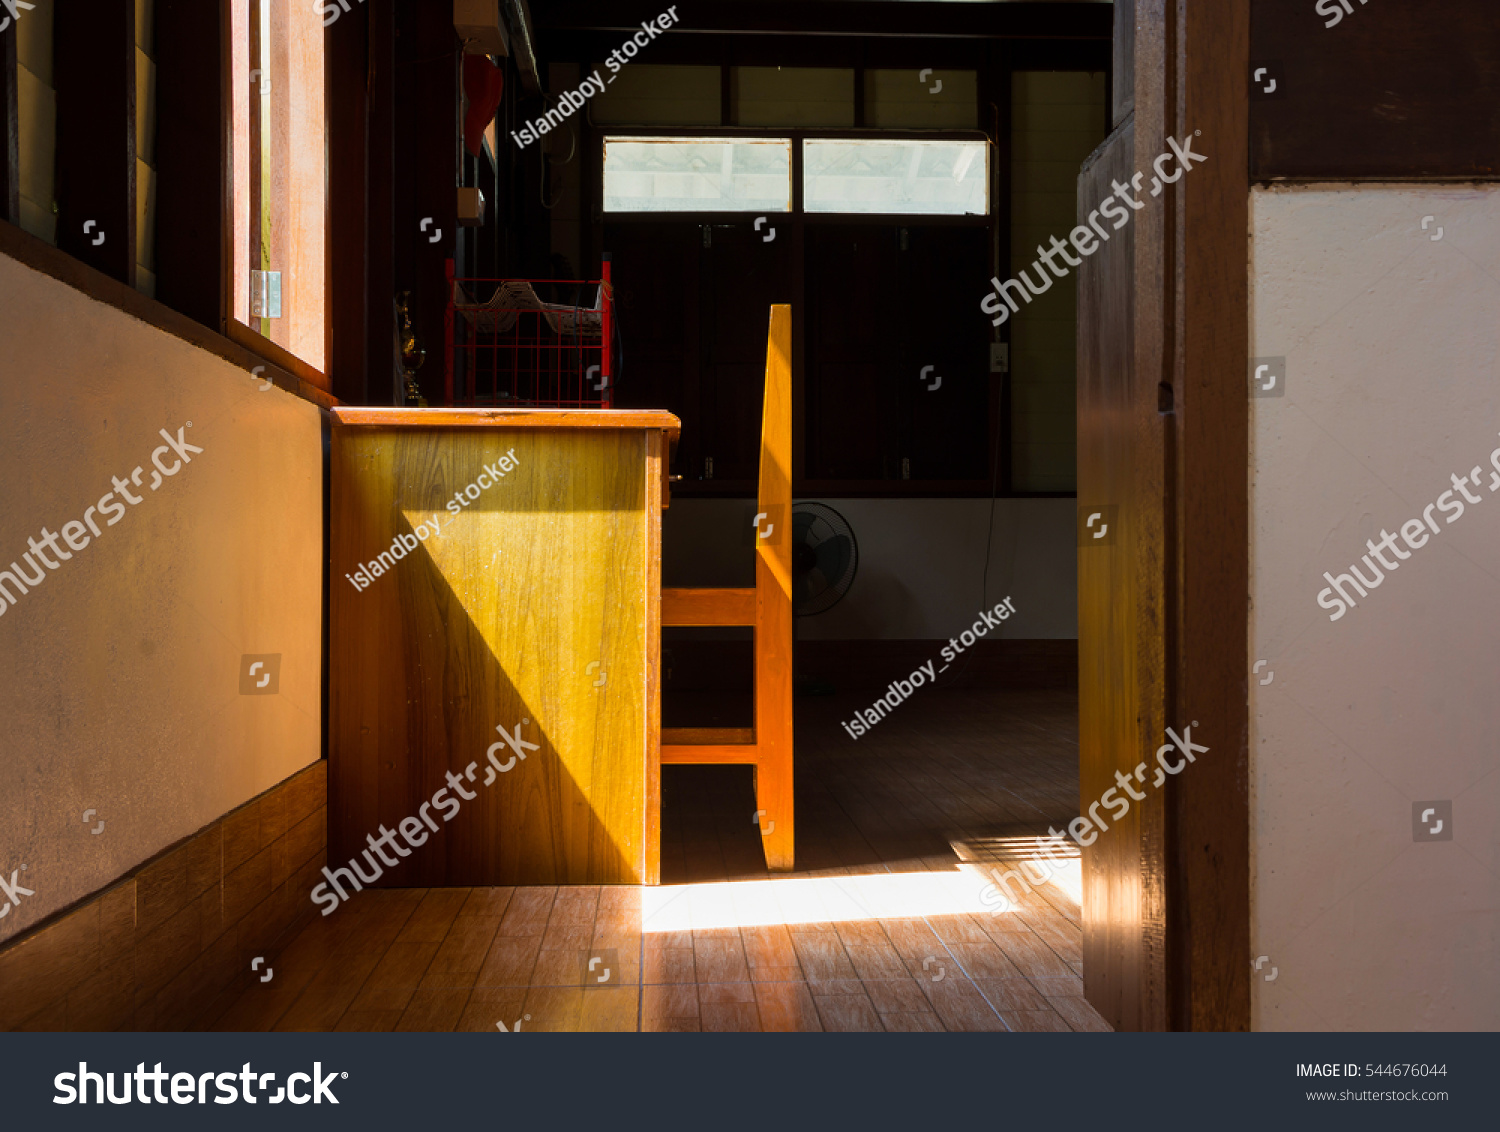 Inside house sunshine light through window passing desk chair and floor deep dark background of